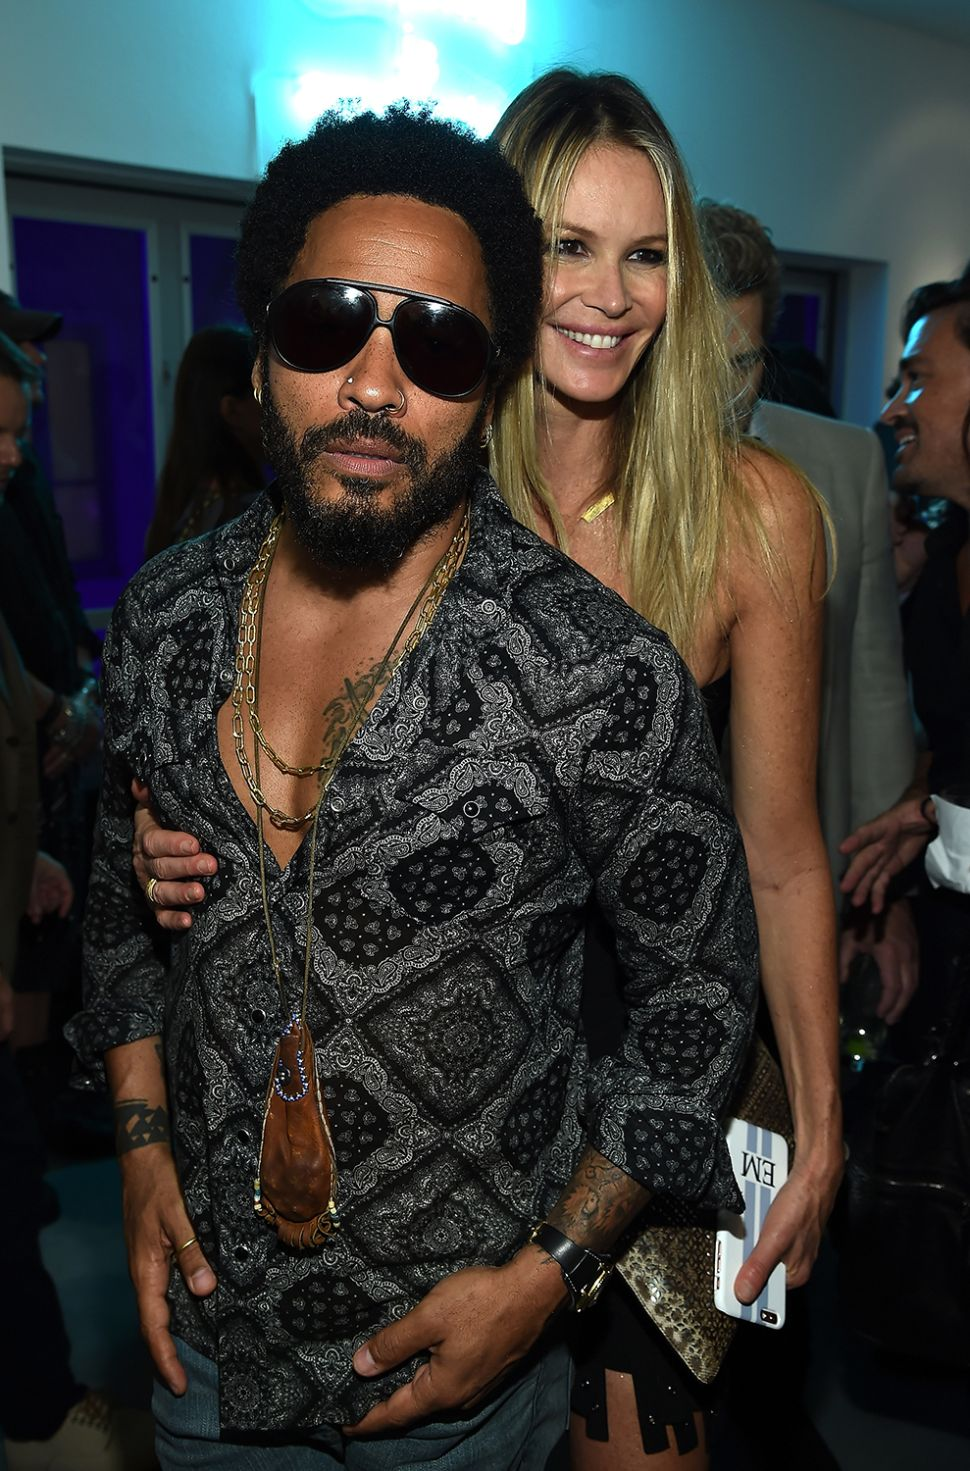 Lenny Kravitz Turns the Lens on Fans With Miami Photo Show